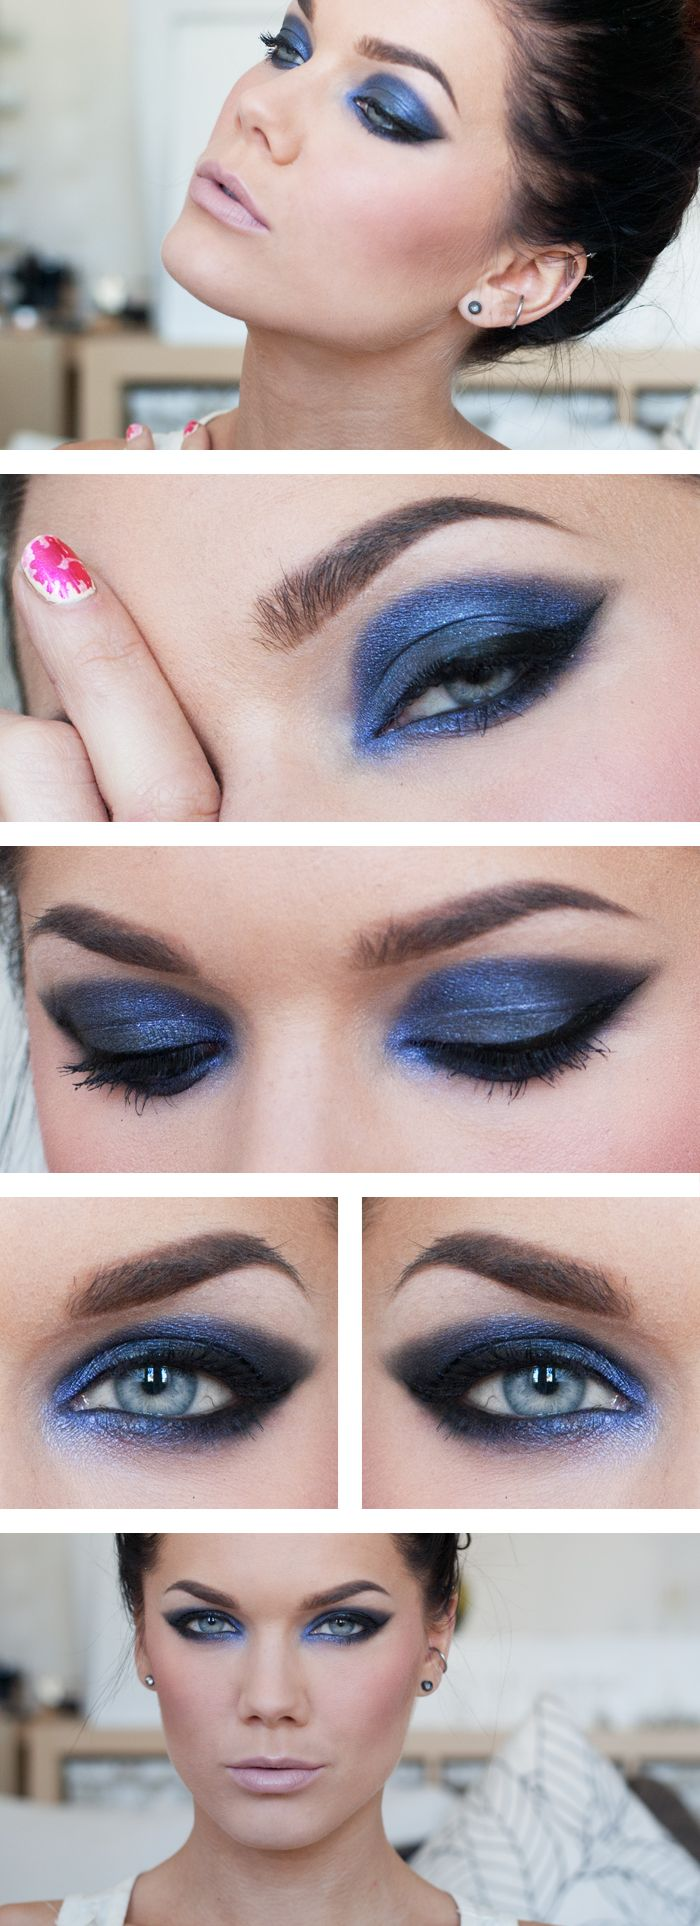 Makeup Geek Eyeshadows Corrupt & Nautica